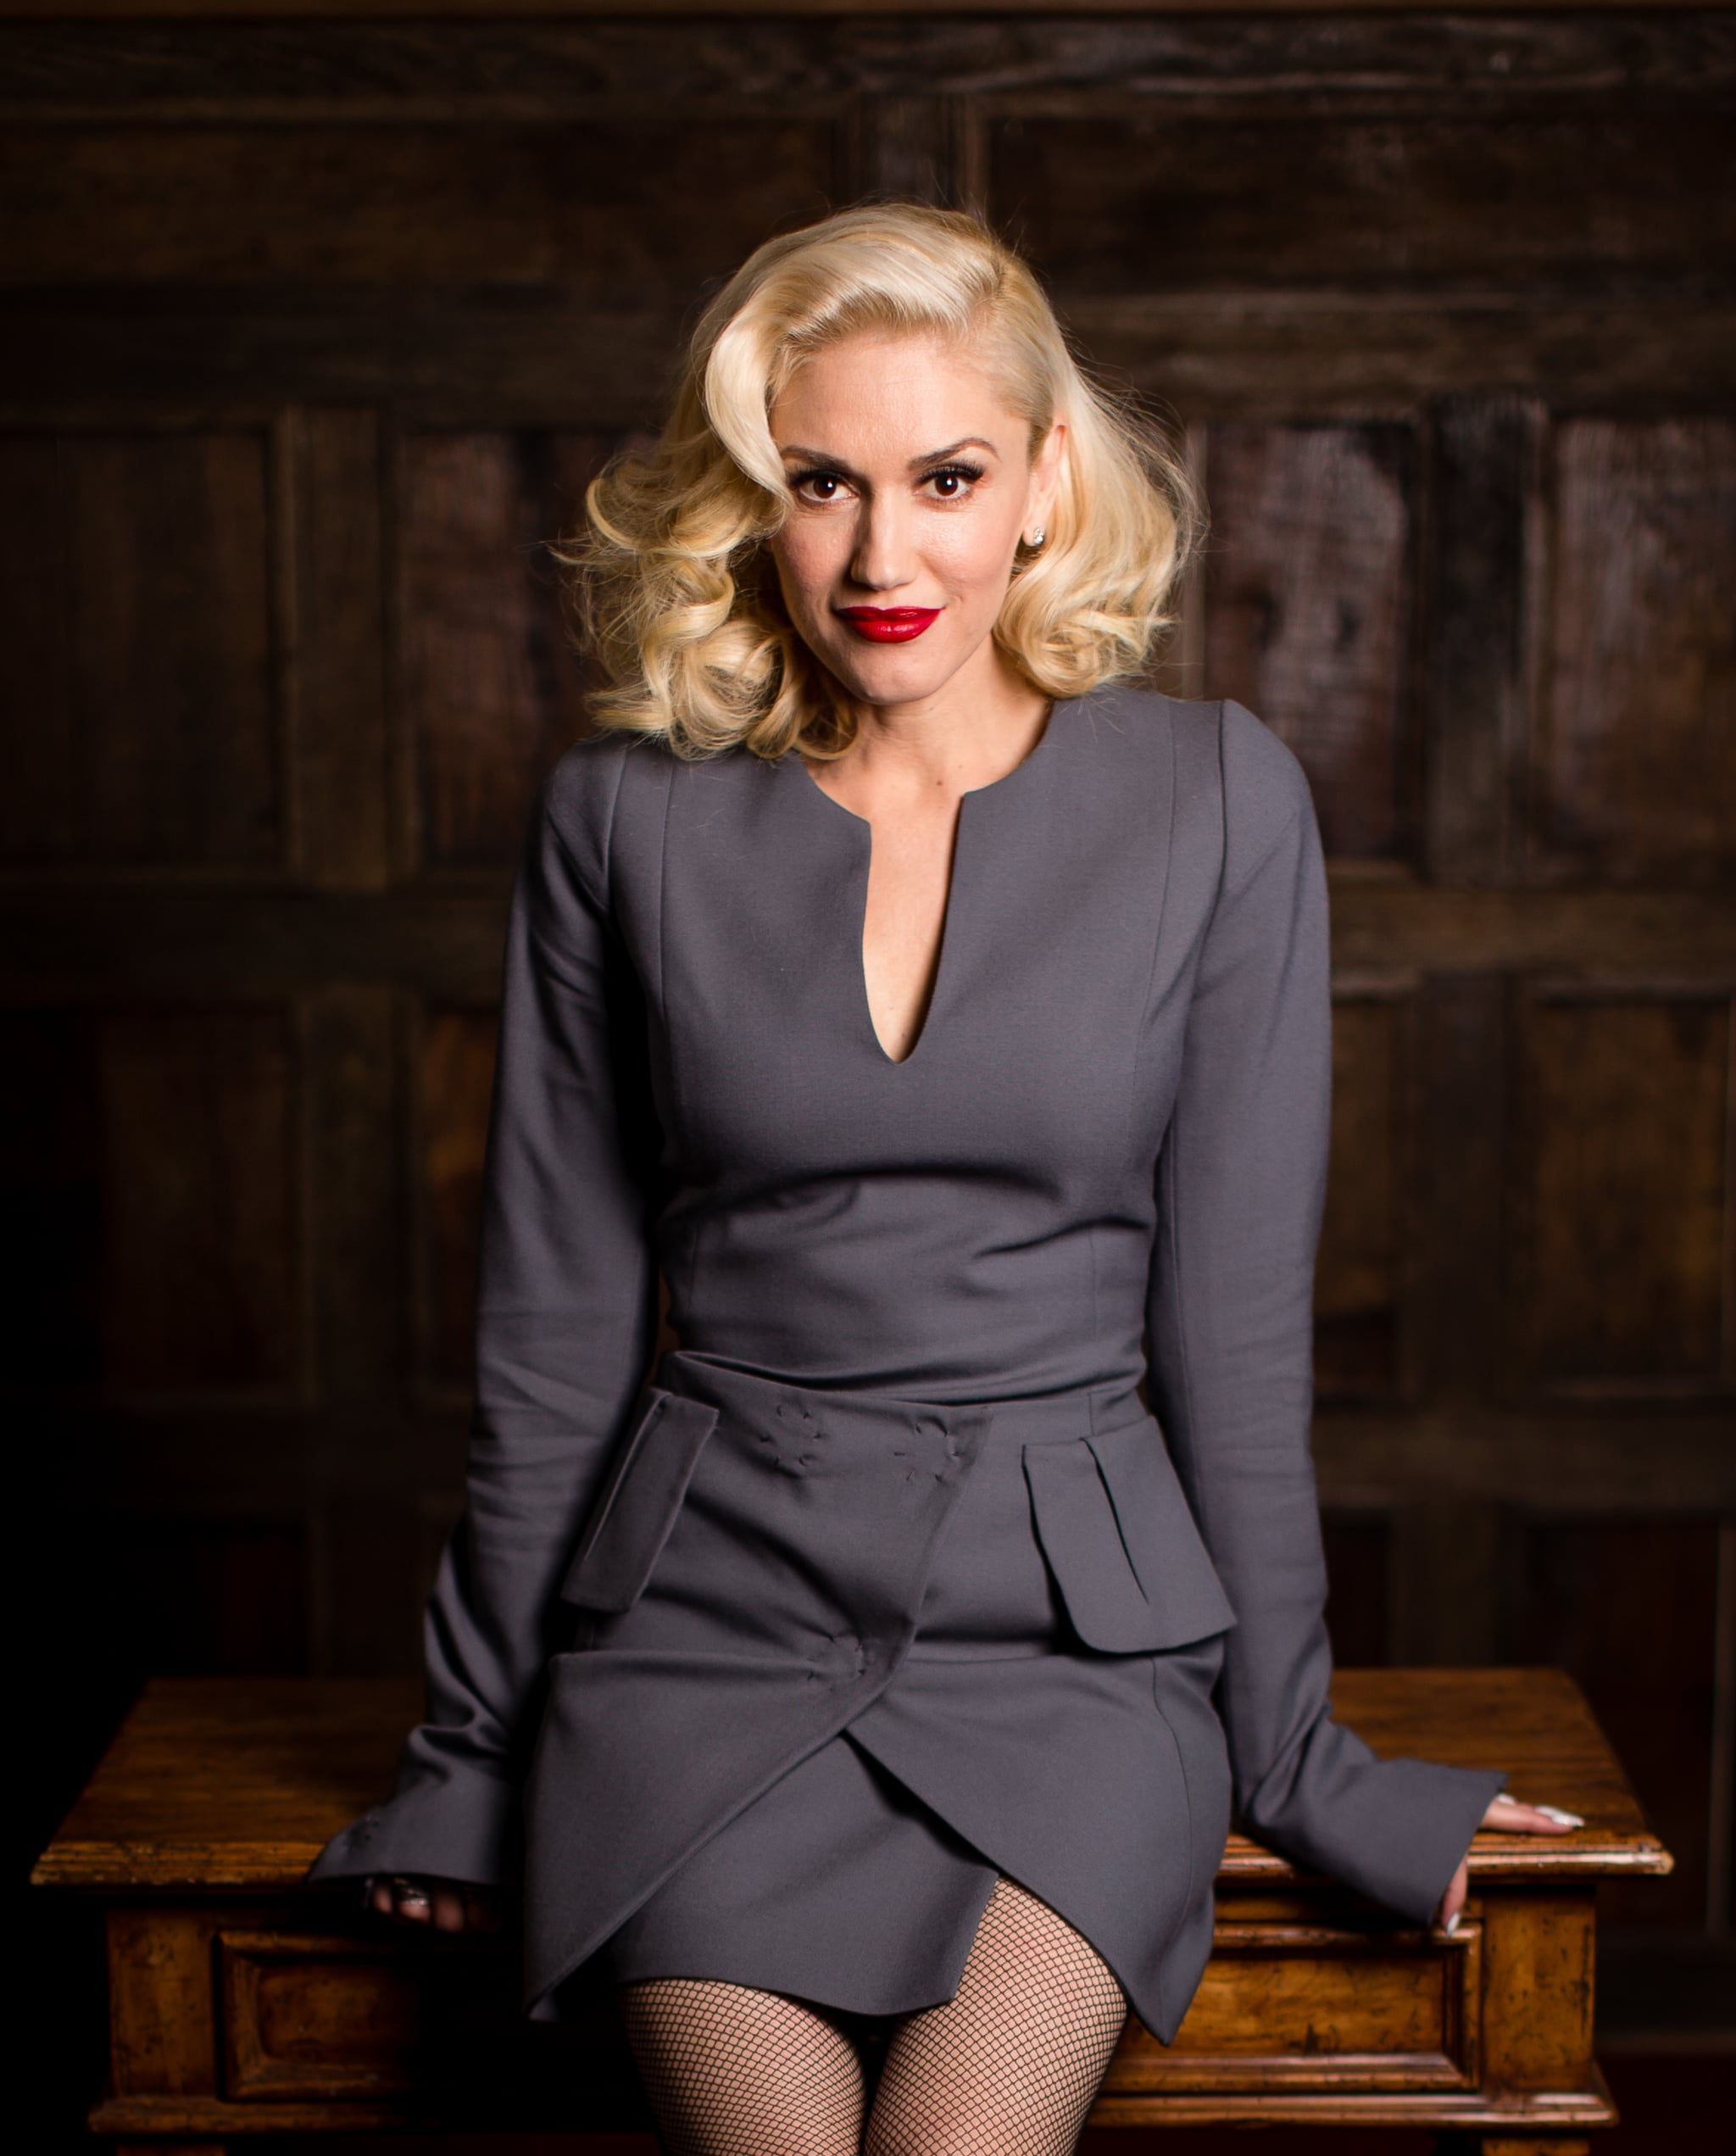 Gwen Stefani Talks About Her Divorce in GQ April 2016 ... Gwen Stefani